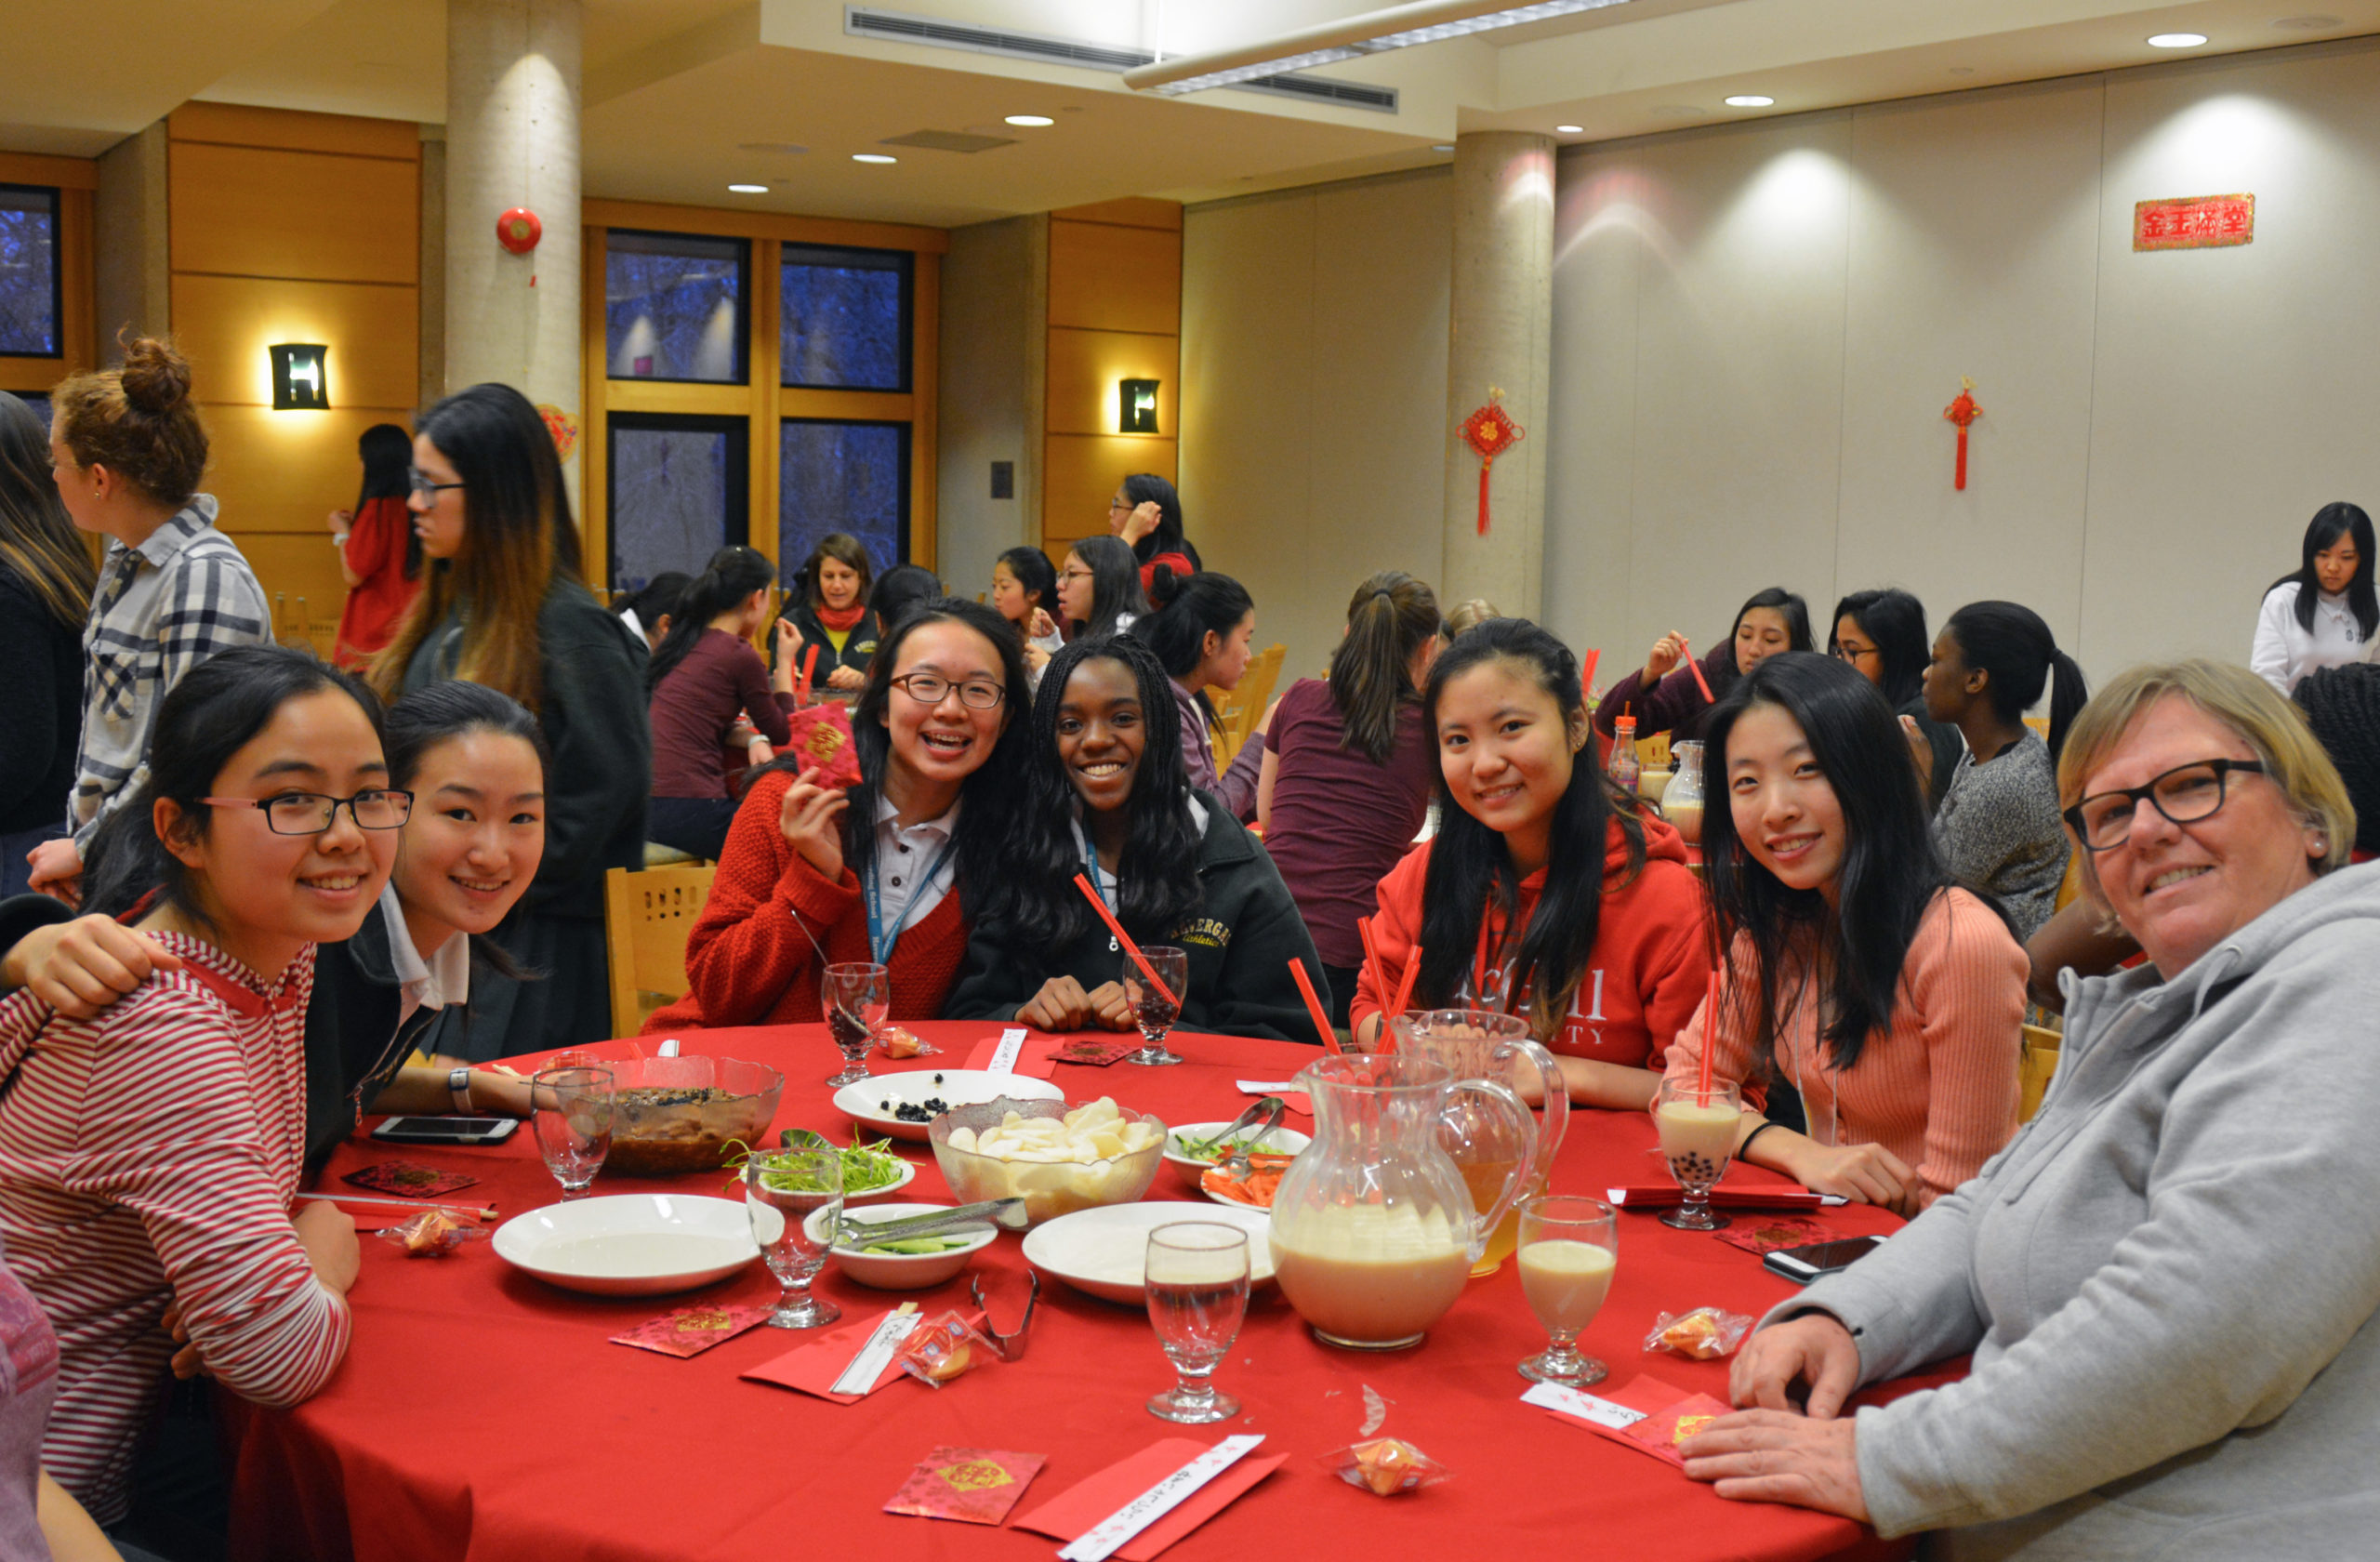 A group of students and a Don sit at a table for a Lunar New Year dinner.